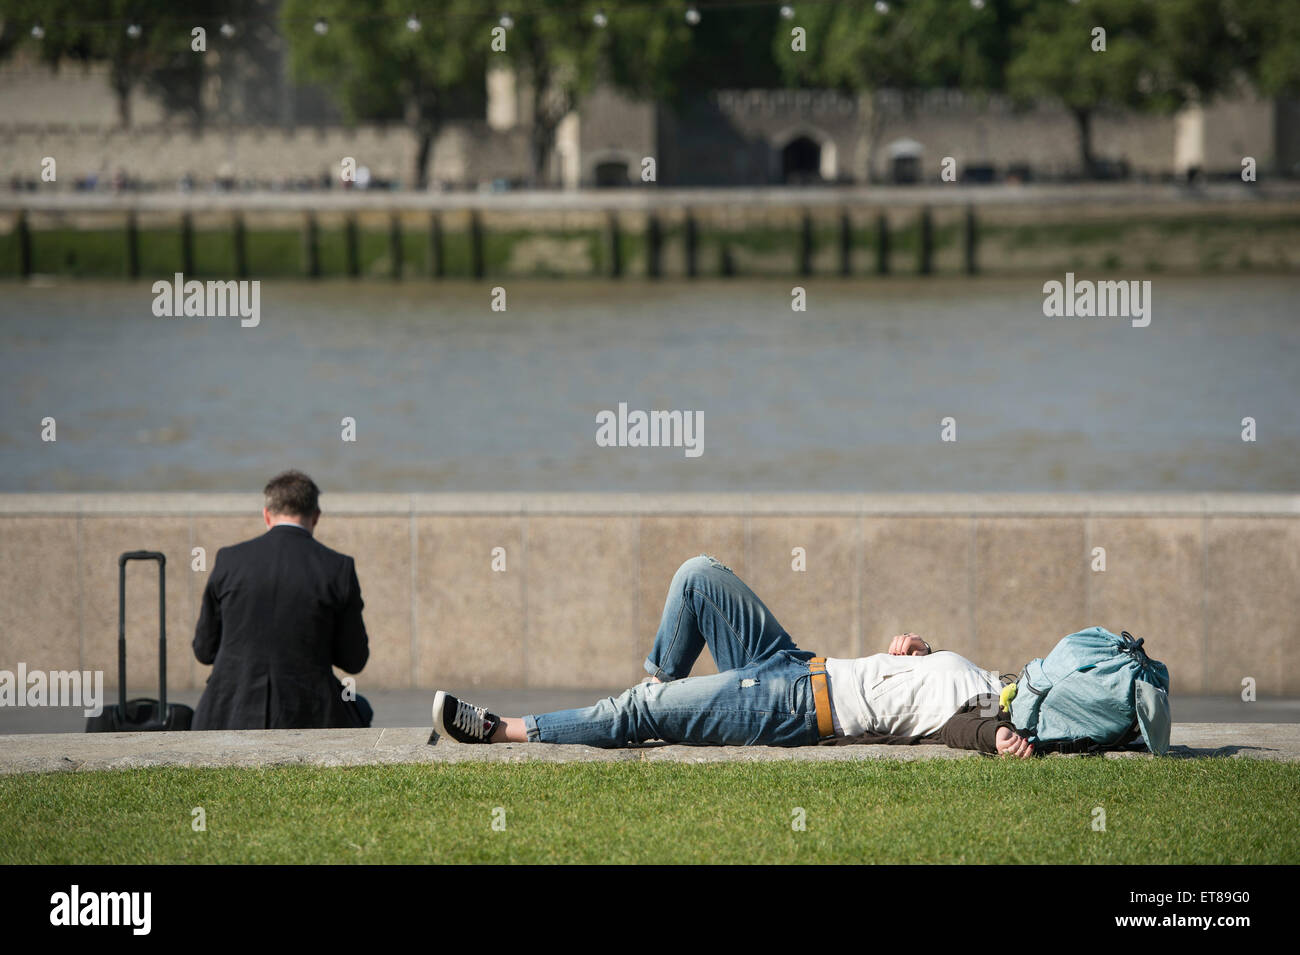 Tourist taking a nap on a sunny day by the River Thames in London - Stock Image